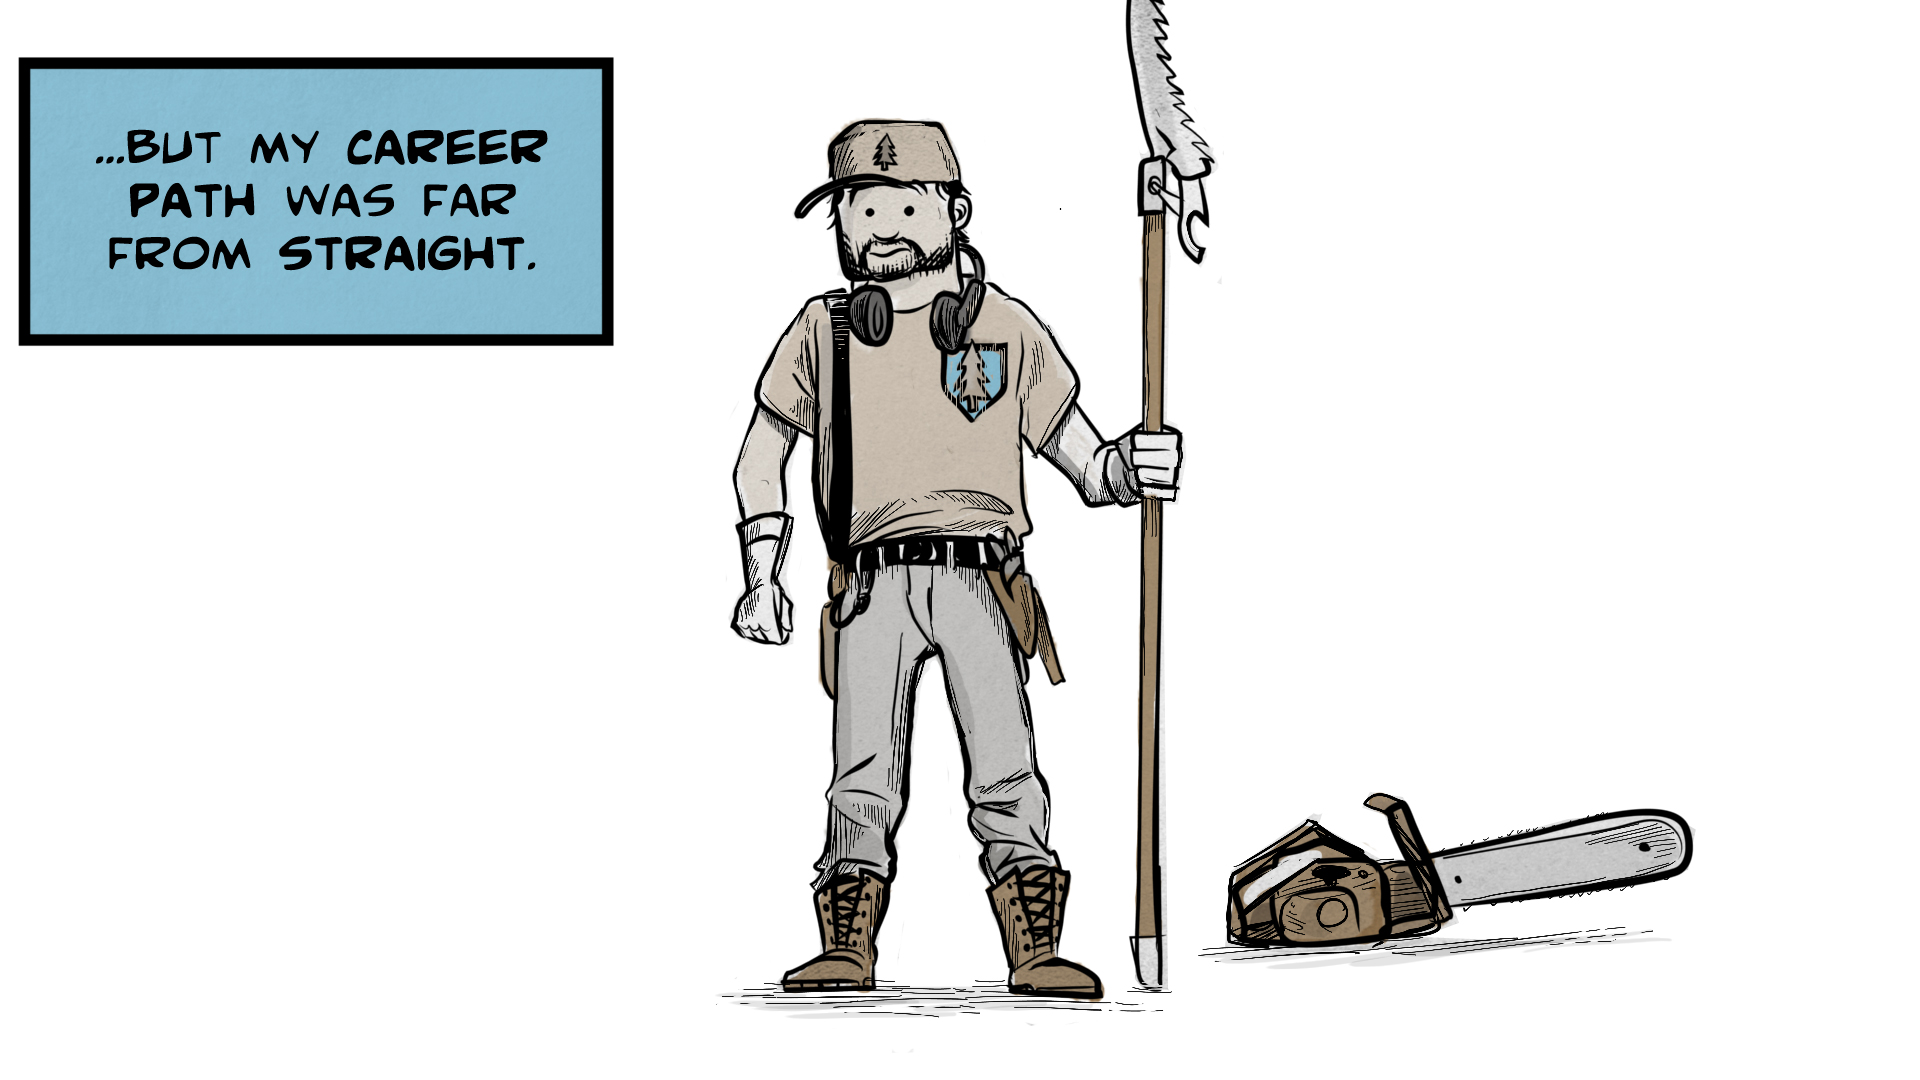 """Danny, the narrator, says, """"But my career path was far from straight."""" Danny stands holding a pole saw in one hand. He has a beard and mustache and is wearing gloves, safety headphones, and various tools on his belt. A chainsaw sits nearby."""